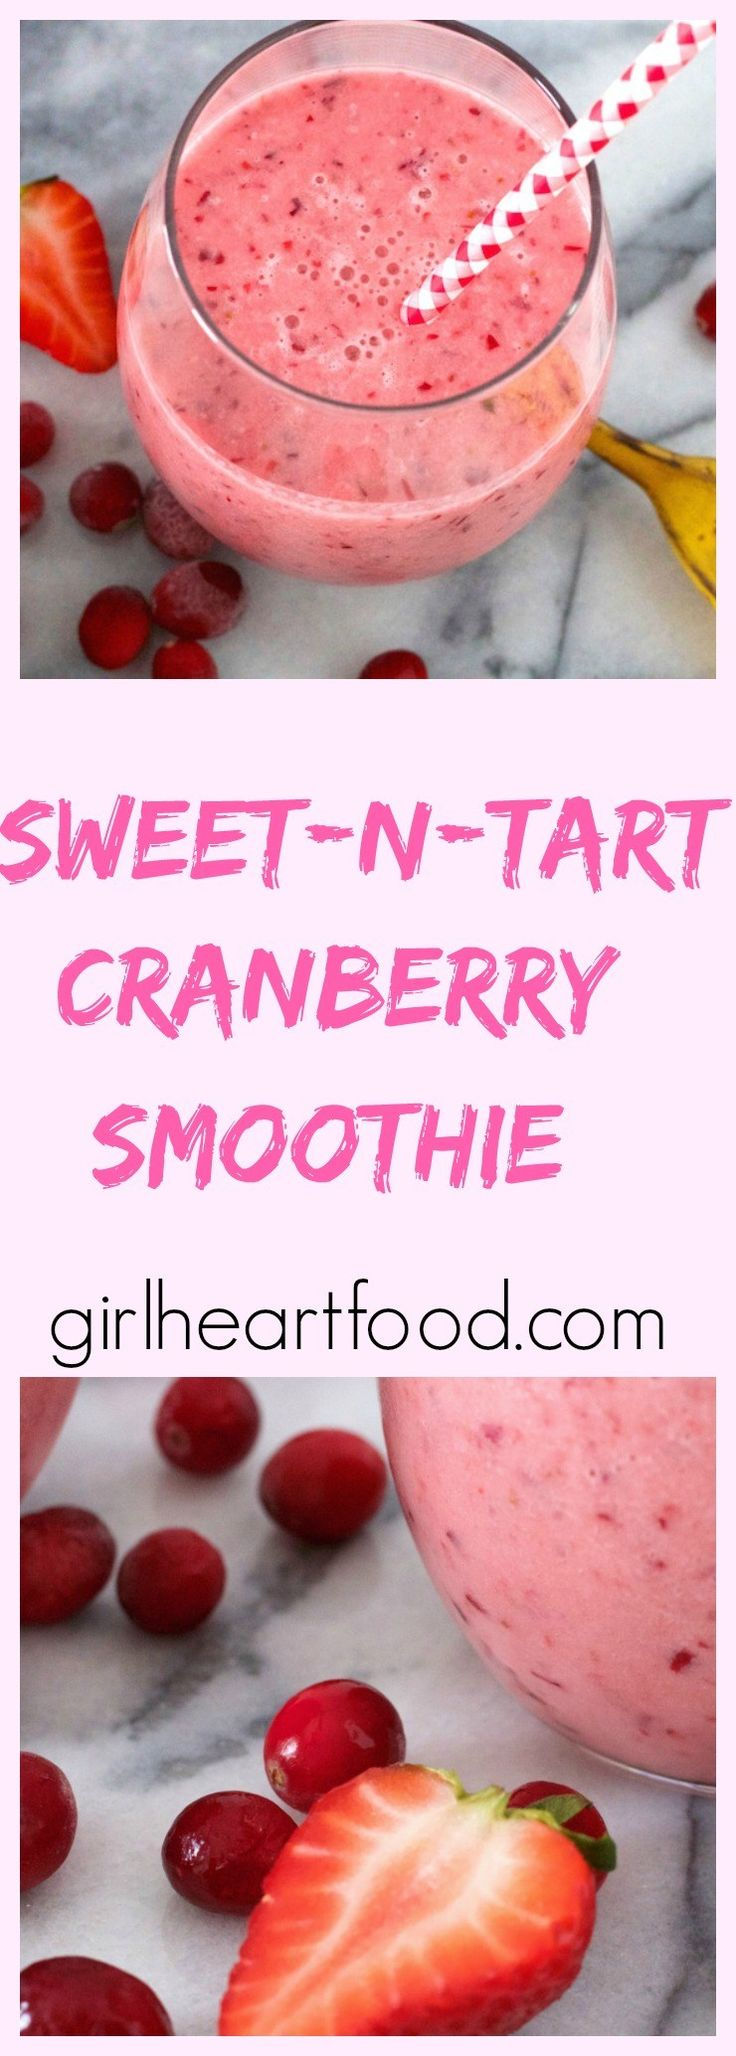 Sweet n Tart Cranberry Smoothie - girlheartfood.com